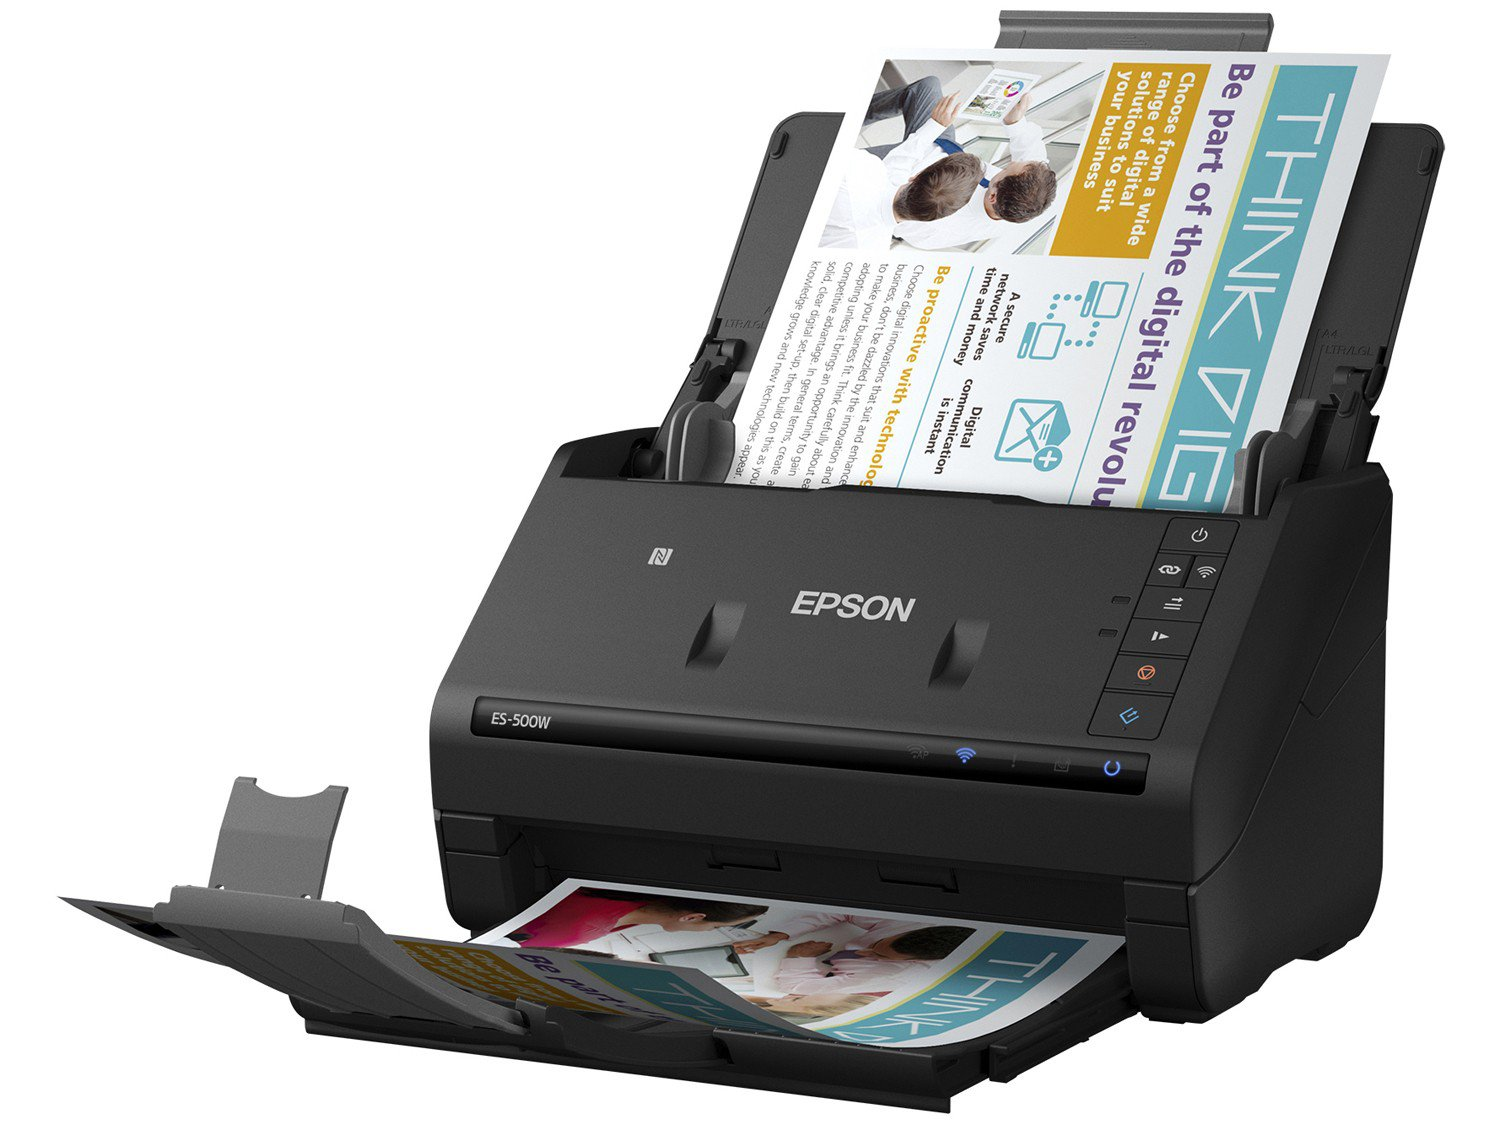 Foto 1 - Scanner de Mesa Epson WorkForce ES500W - Colorido Wireless 600dpi